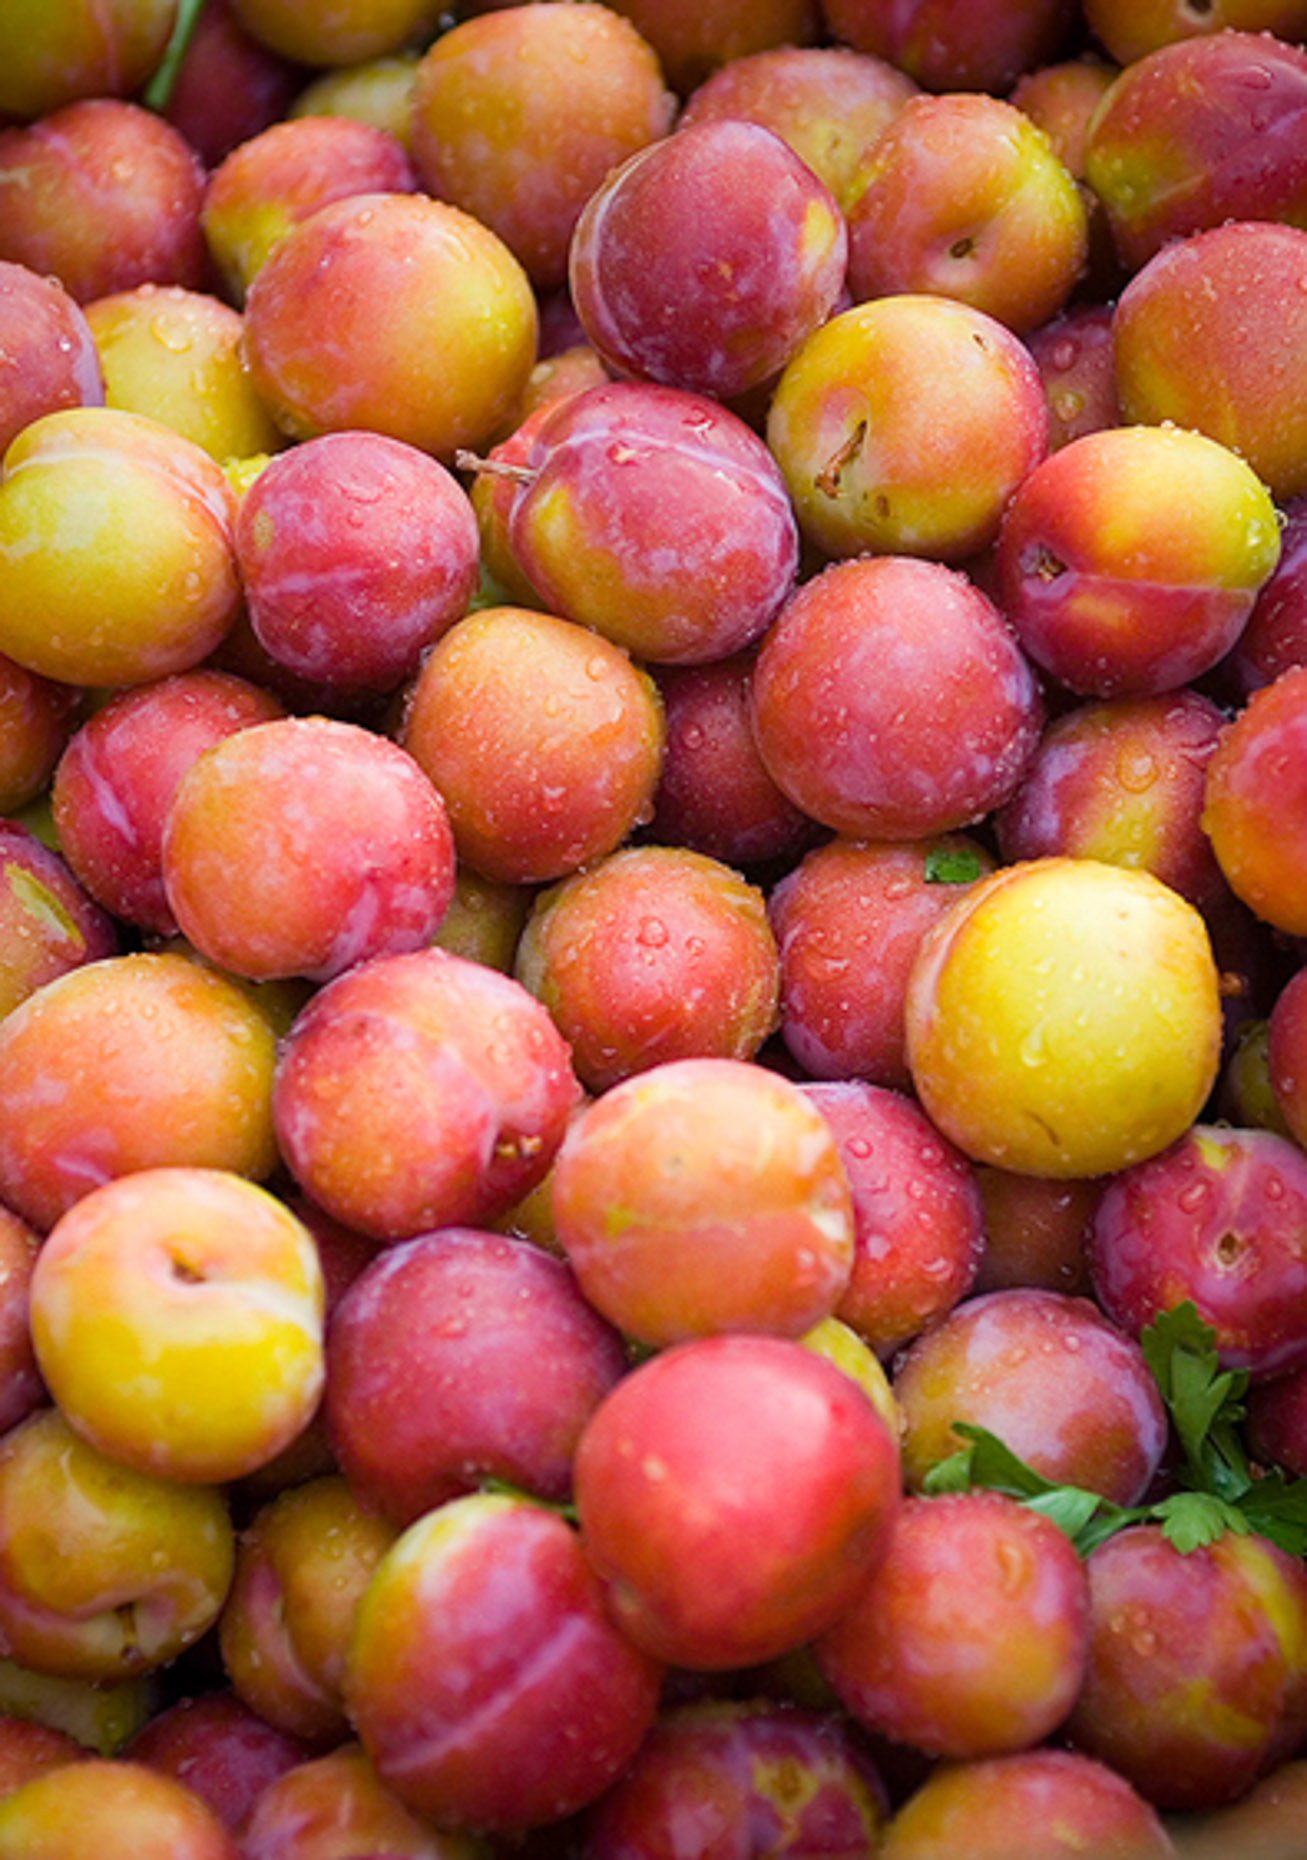 Image of harvested apricots after summer rain, Van Turkey.